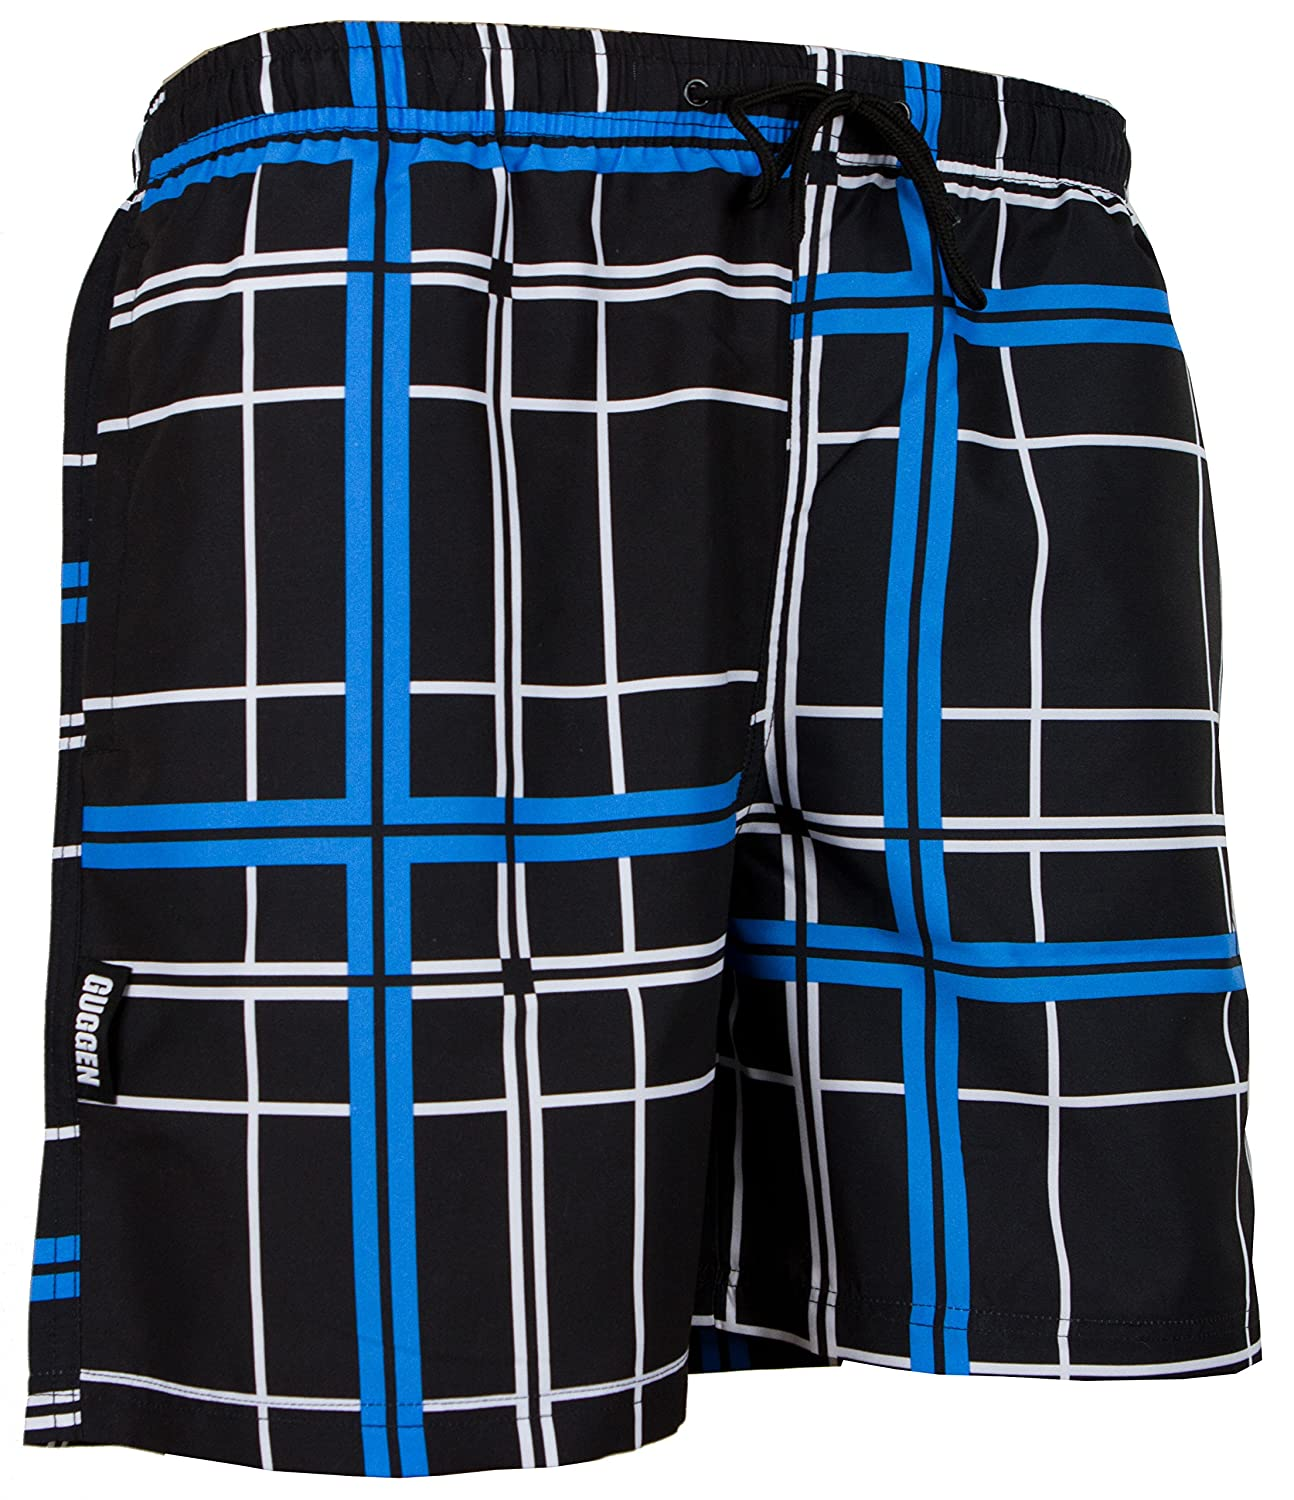 GUGGEN Men's swimming trunks out of High-Tec Material swim shorts bathing drawers bathers slip checked *High Quality Print*